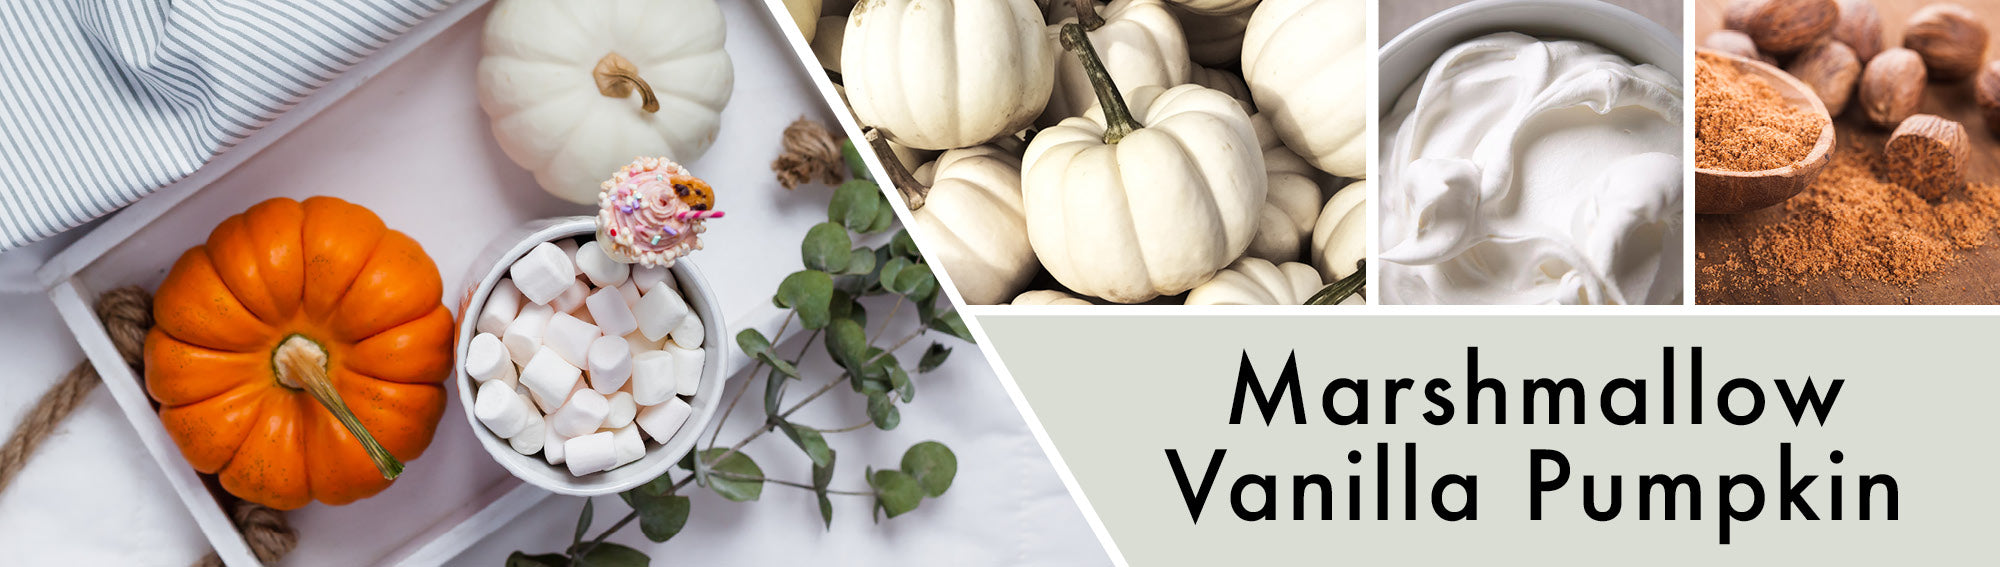 Marshmallow Vanilla Pumpkin Fragrance